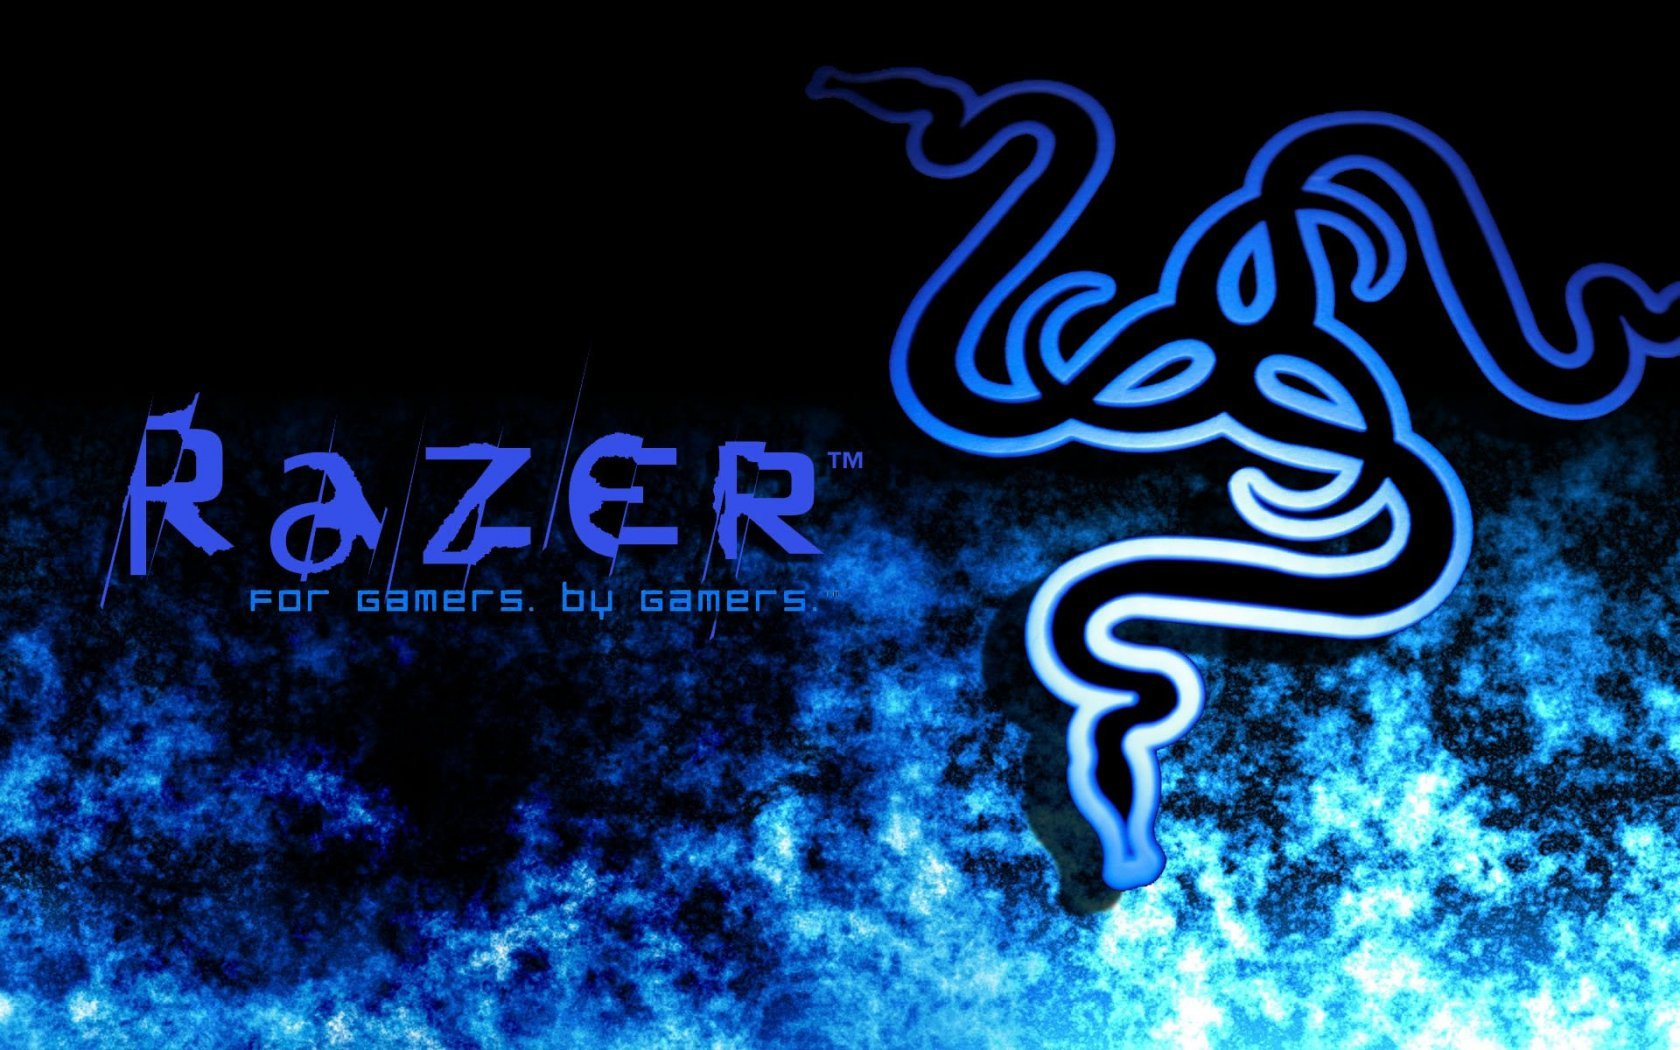 Download hd 1680x1050 Razer desktop wallpaper ID:383607 for free